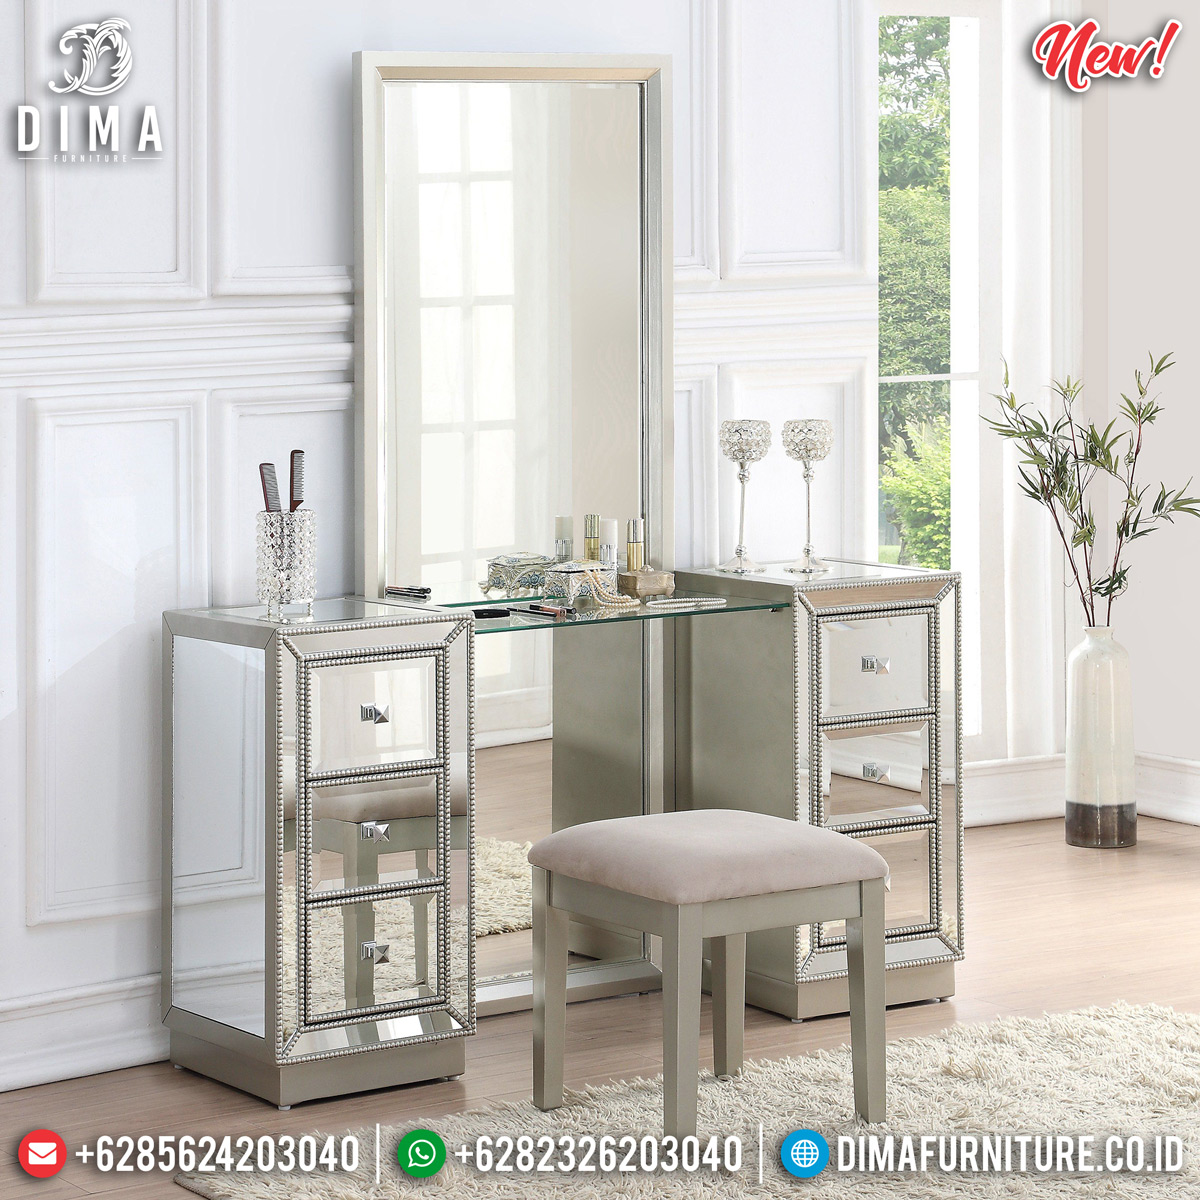 New Model Meja Rias Minimalis Unique Design Furniture Jepara BT-0726